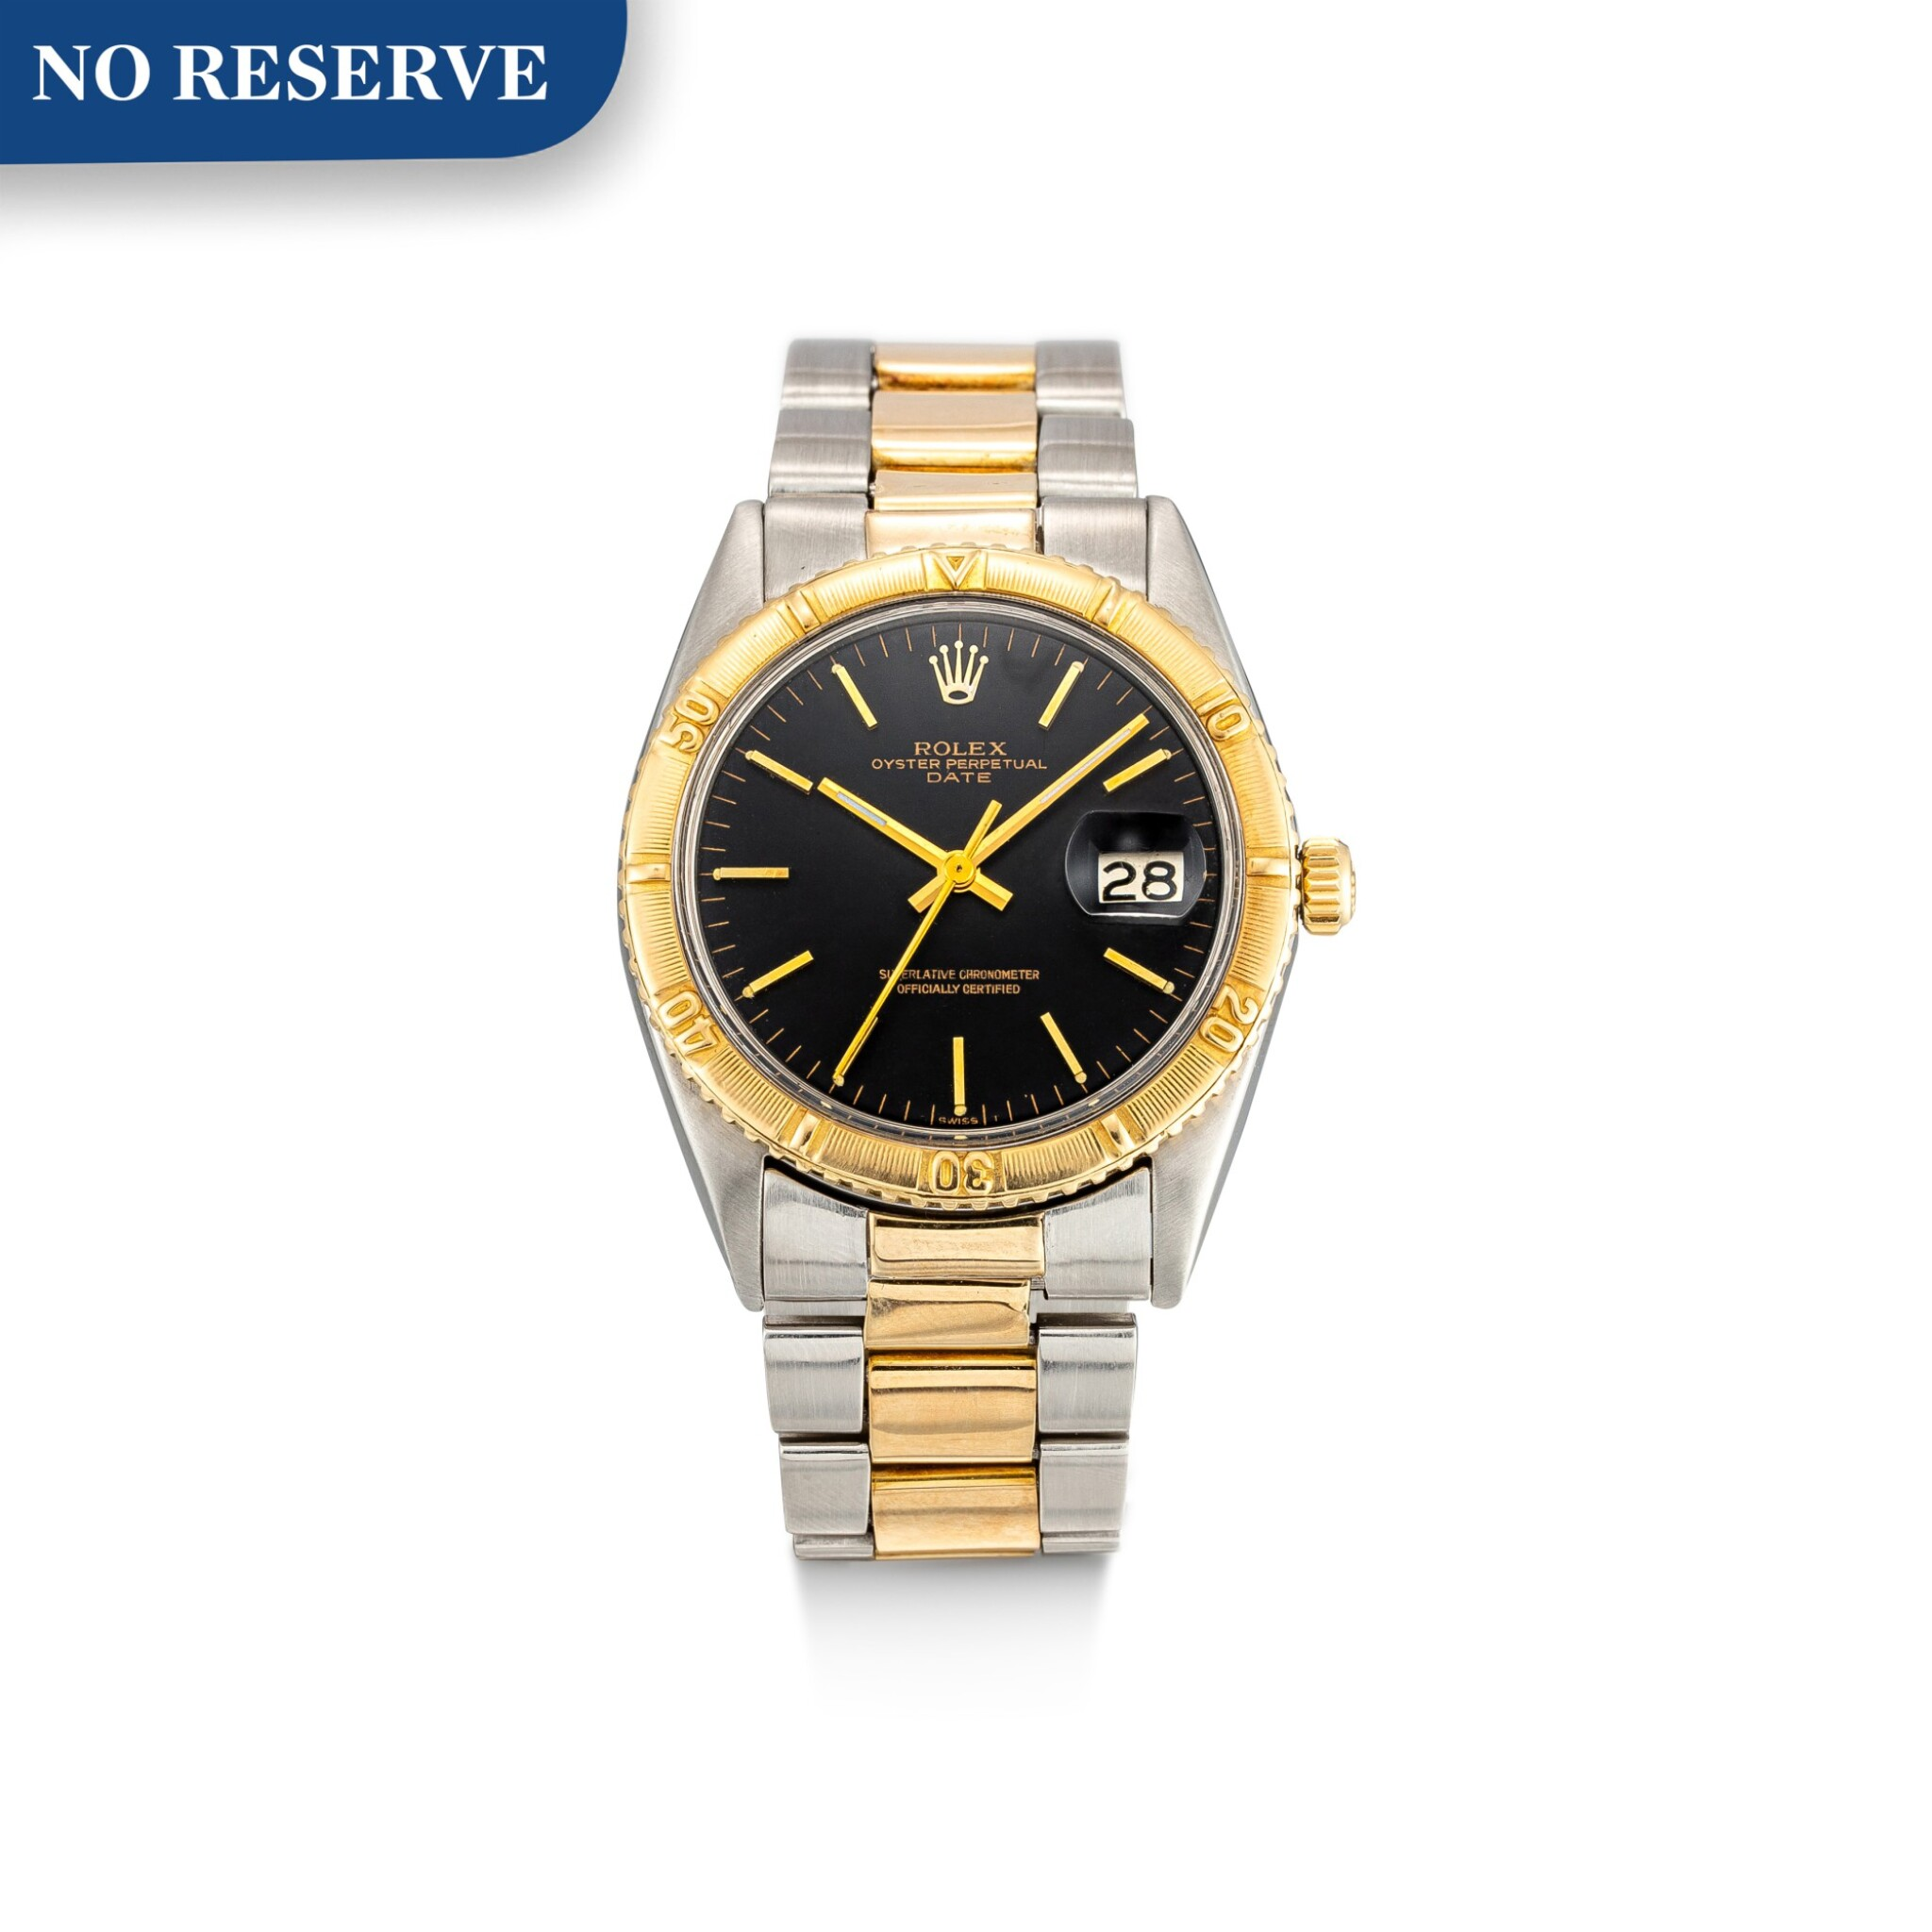 """View full screen - View 1 of Lot 8173. ROLEX   THUNDERBIRD DATEJUST, REFERENCE 1625   A YELLOW GOLD AND STAINLESS STEEL WRISTWATCH WITH DATE AND BRACELET, CIRCA 1968   勞力士   """"Thunderbird"""" Datejust 型號1625 黃金及精鋼鏈帶腕錶,備日期顯示,約1968年製 ."""